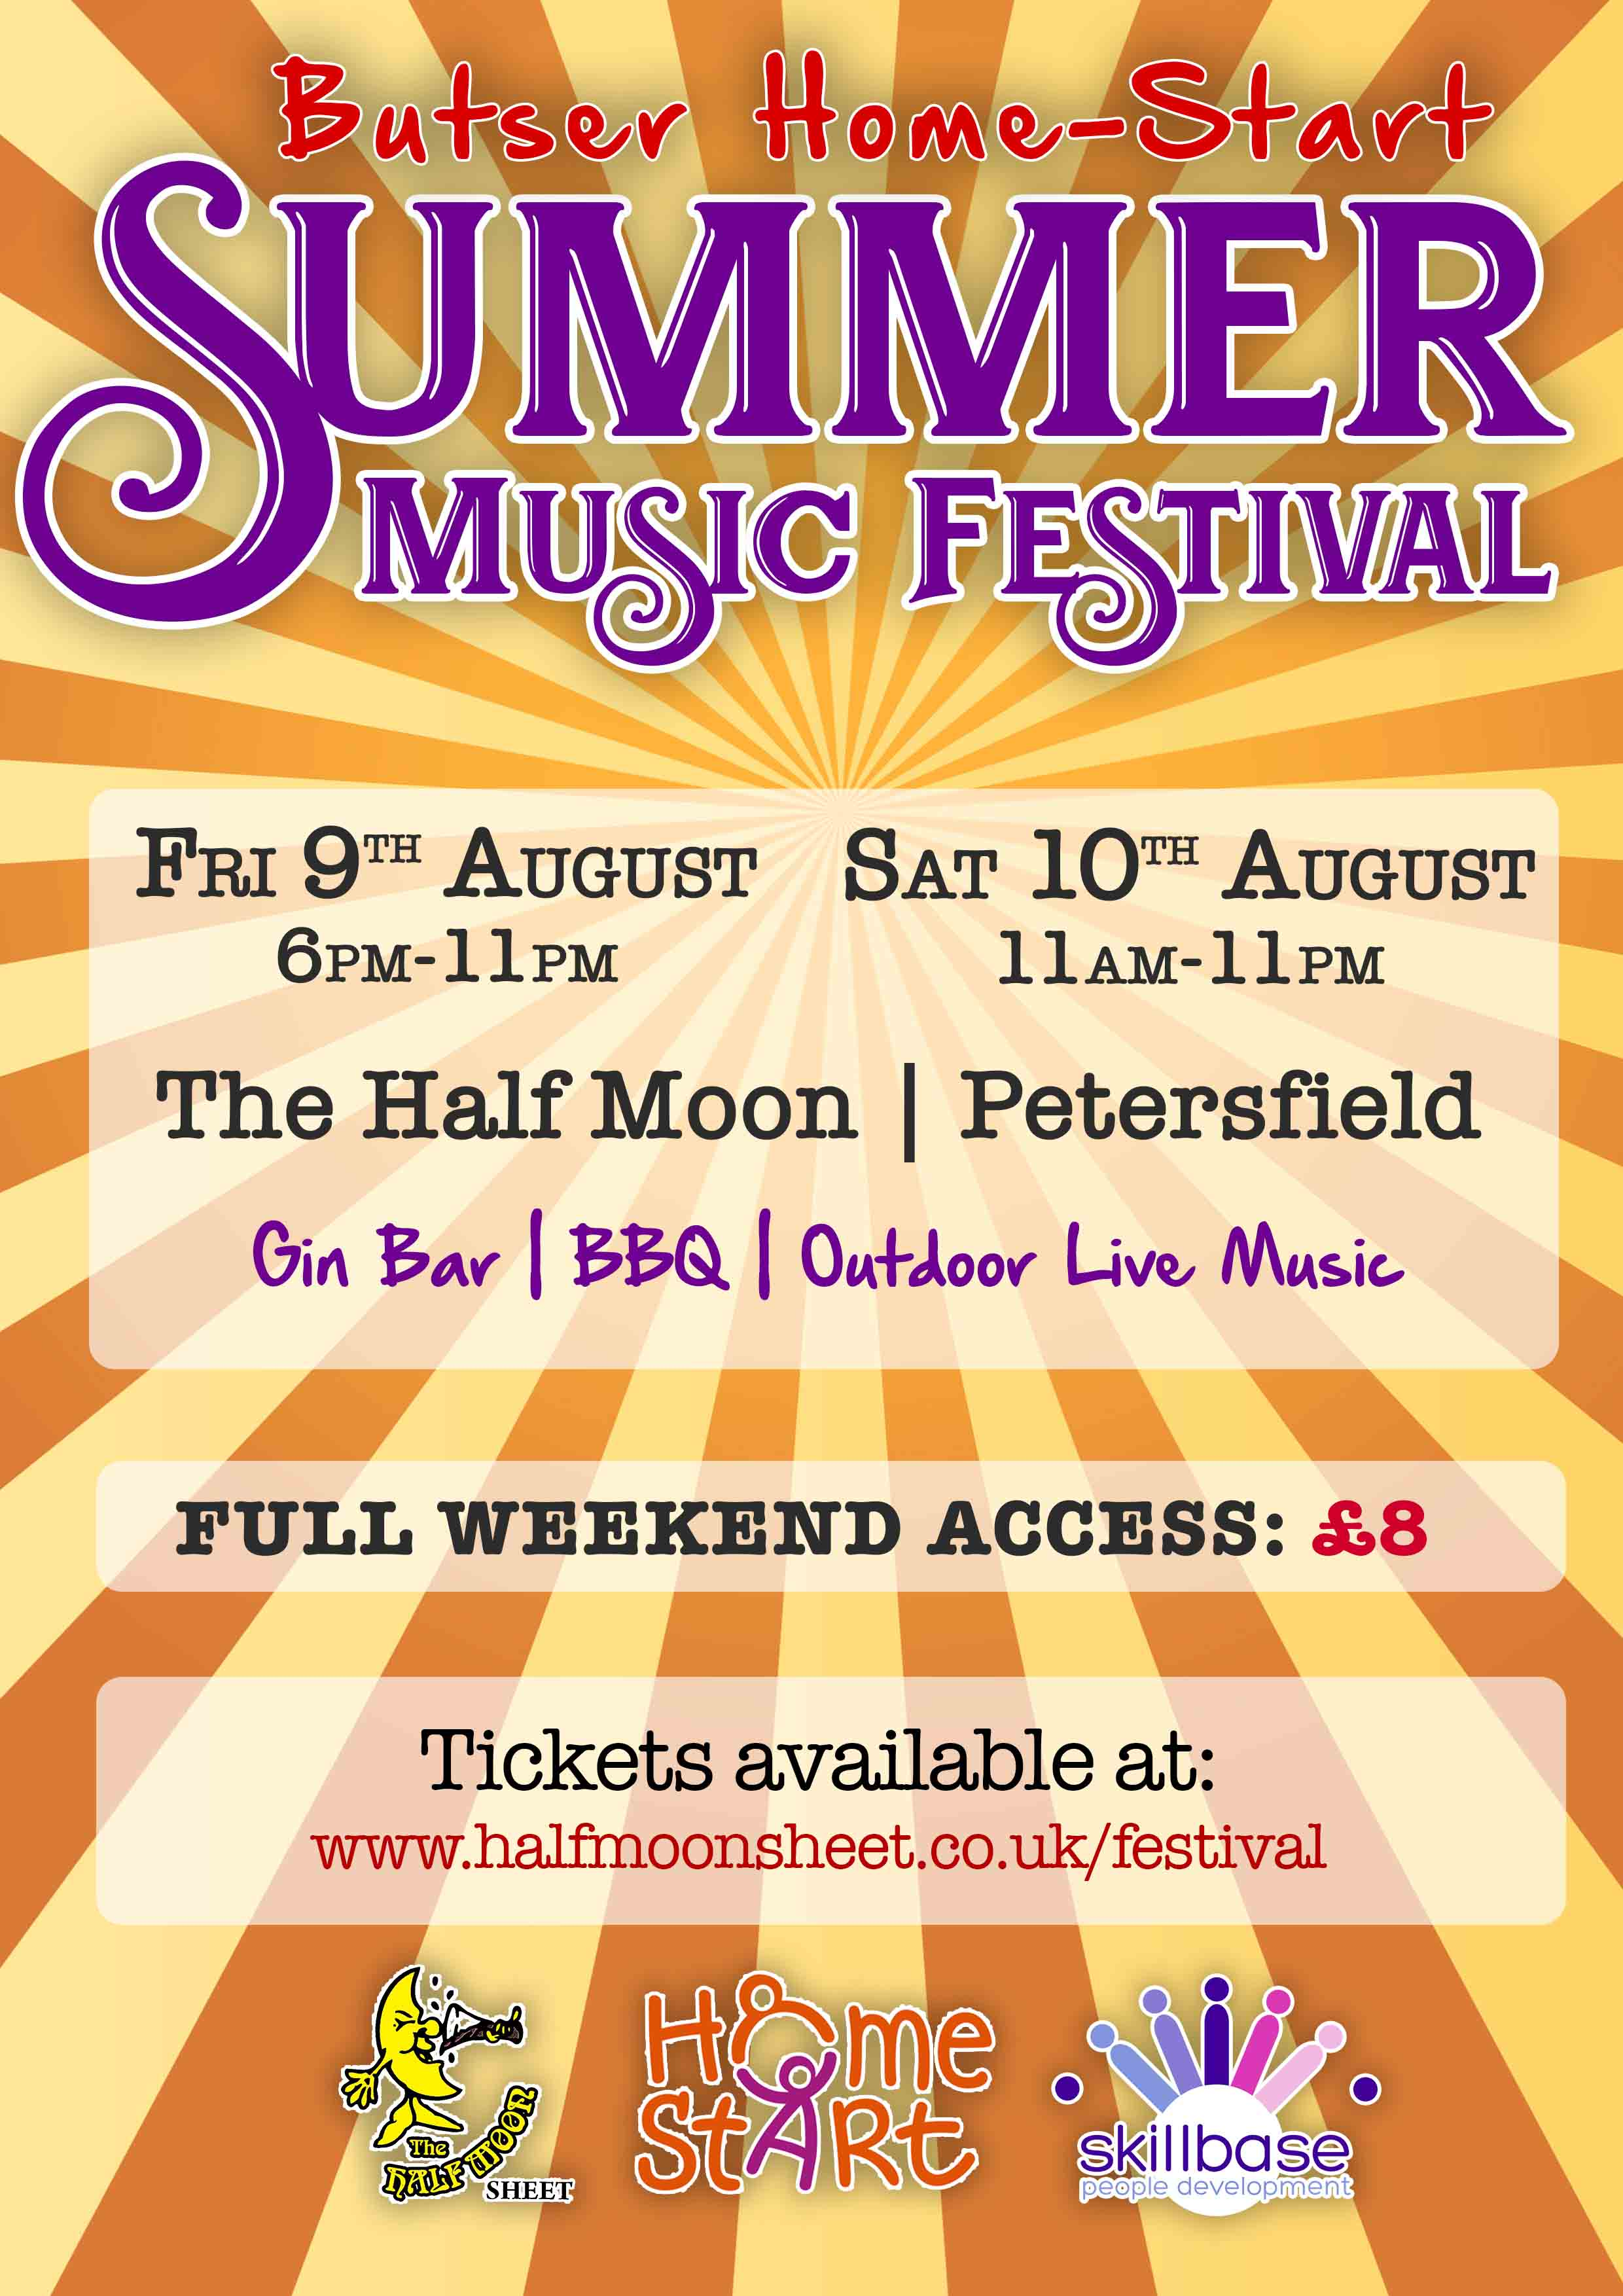 Home-Start Butser Summer Music Festival @ The Half Moon, Sheet banner image